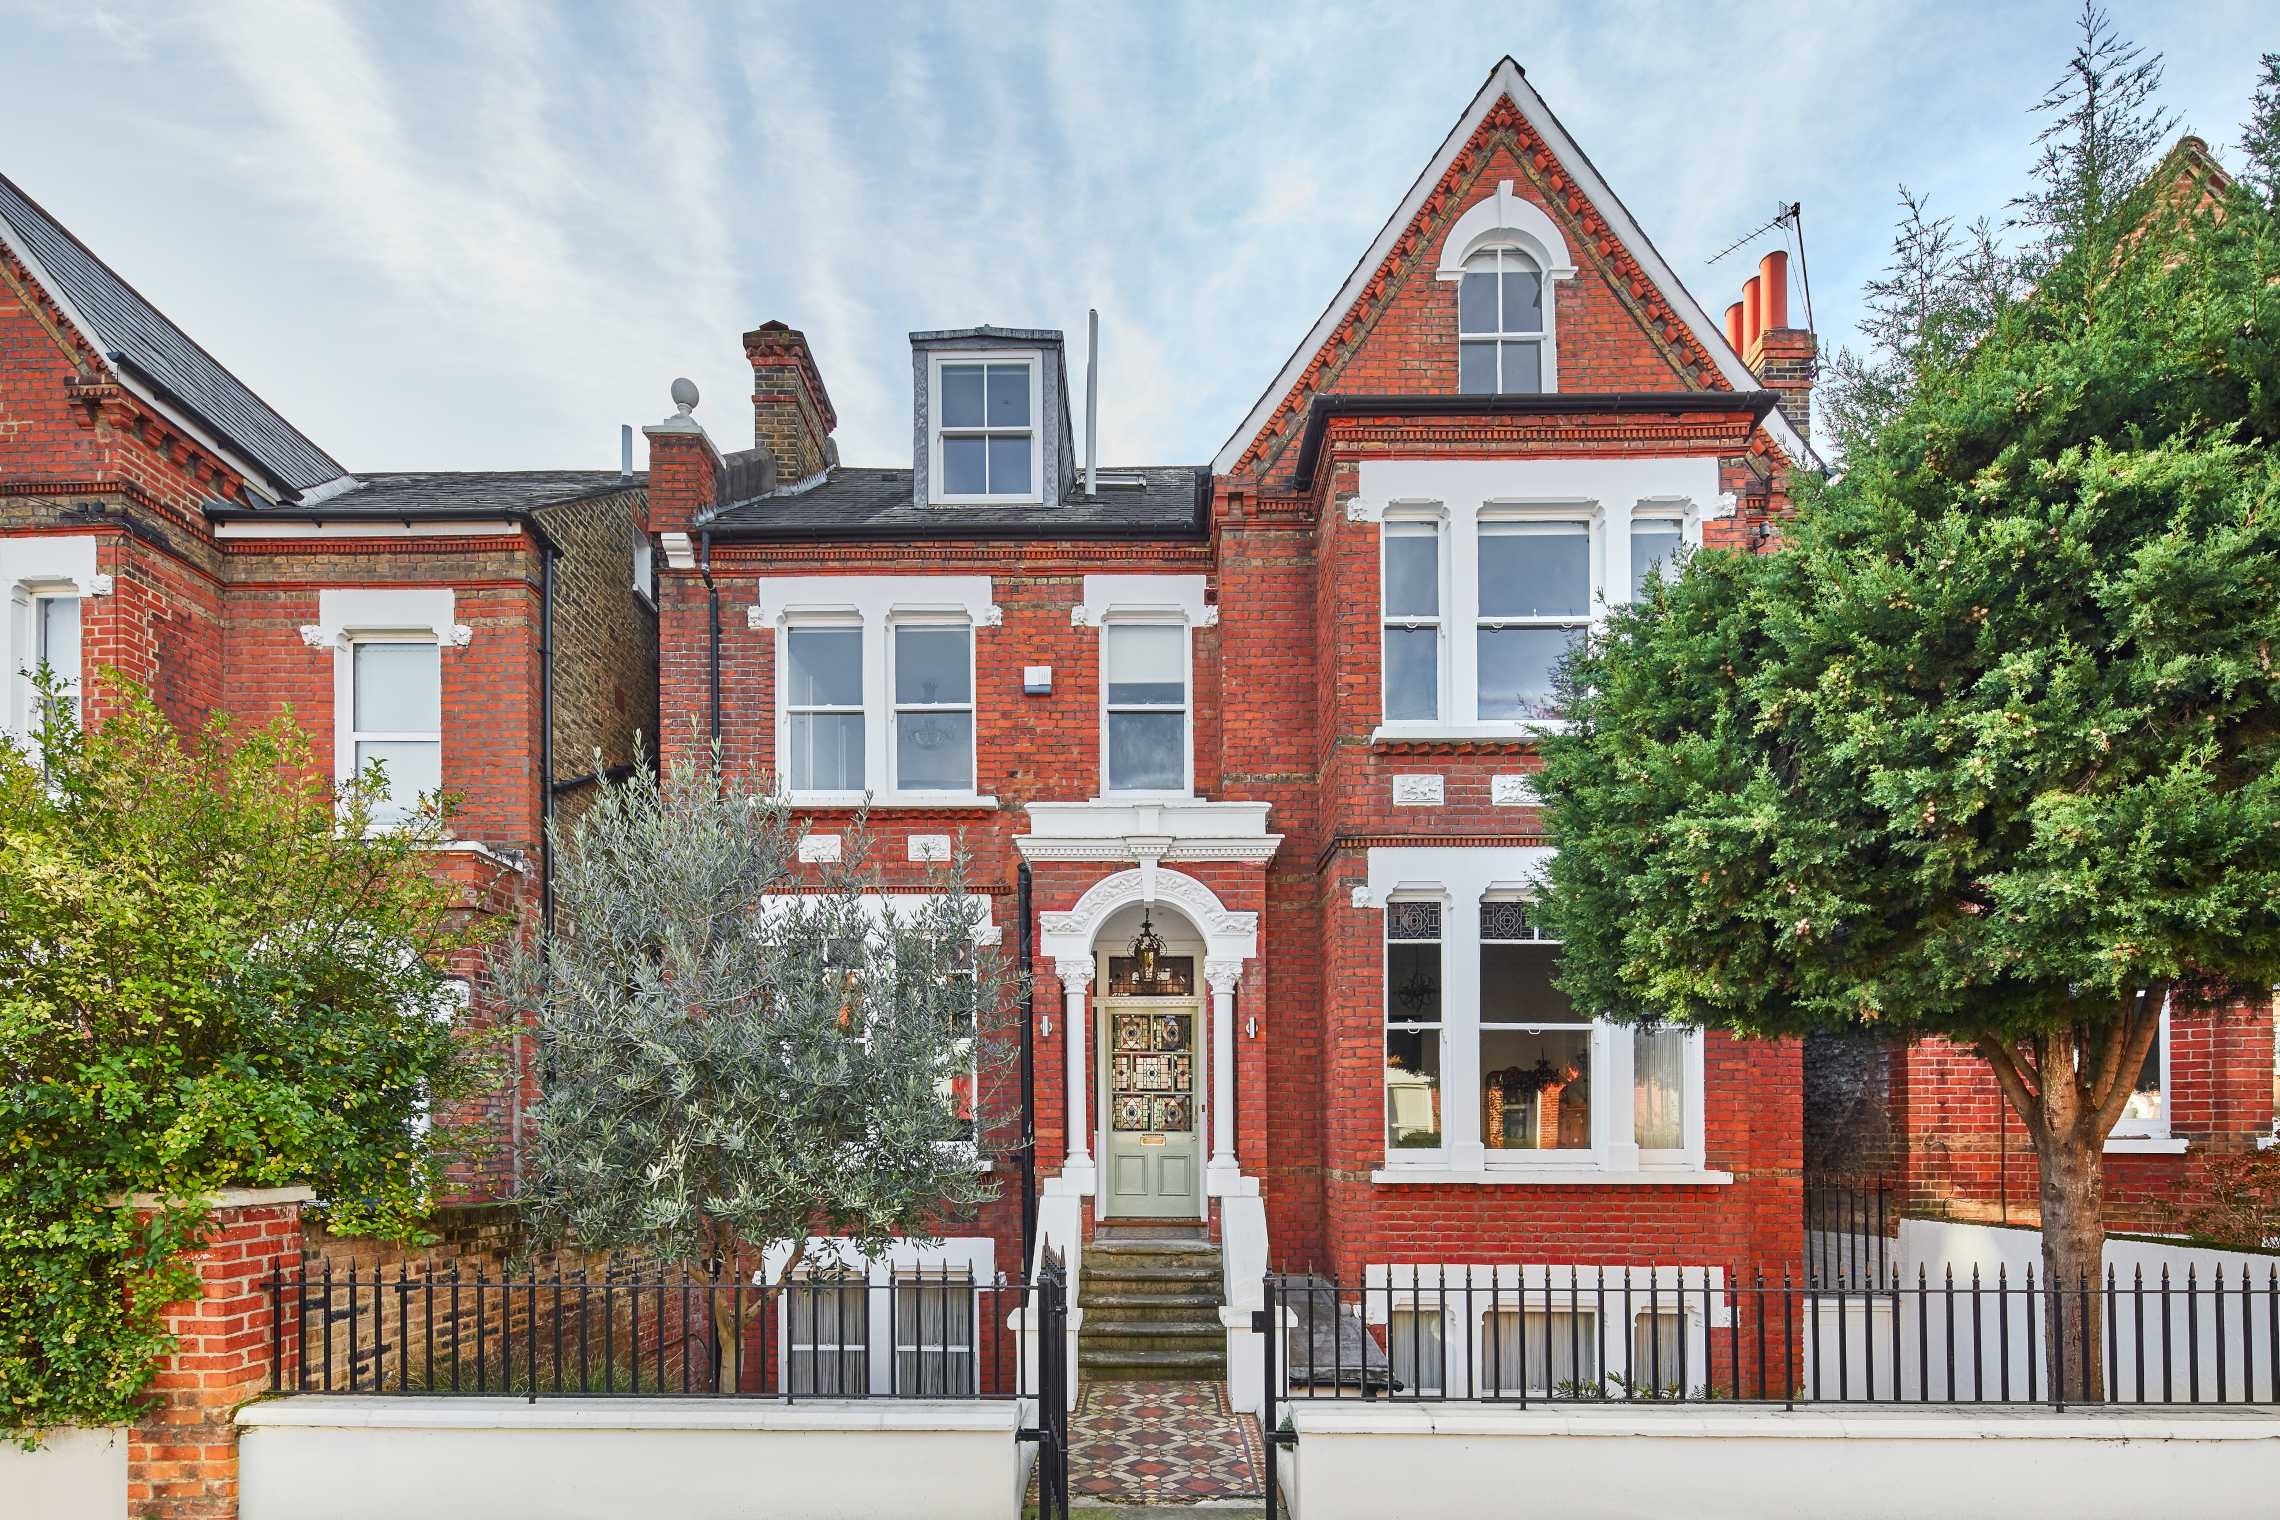 The exterior of a Victorian house for sale on Templar Street, SE5